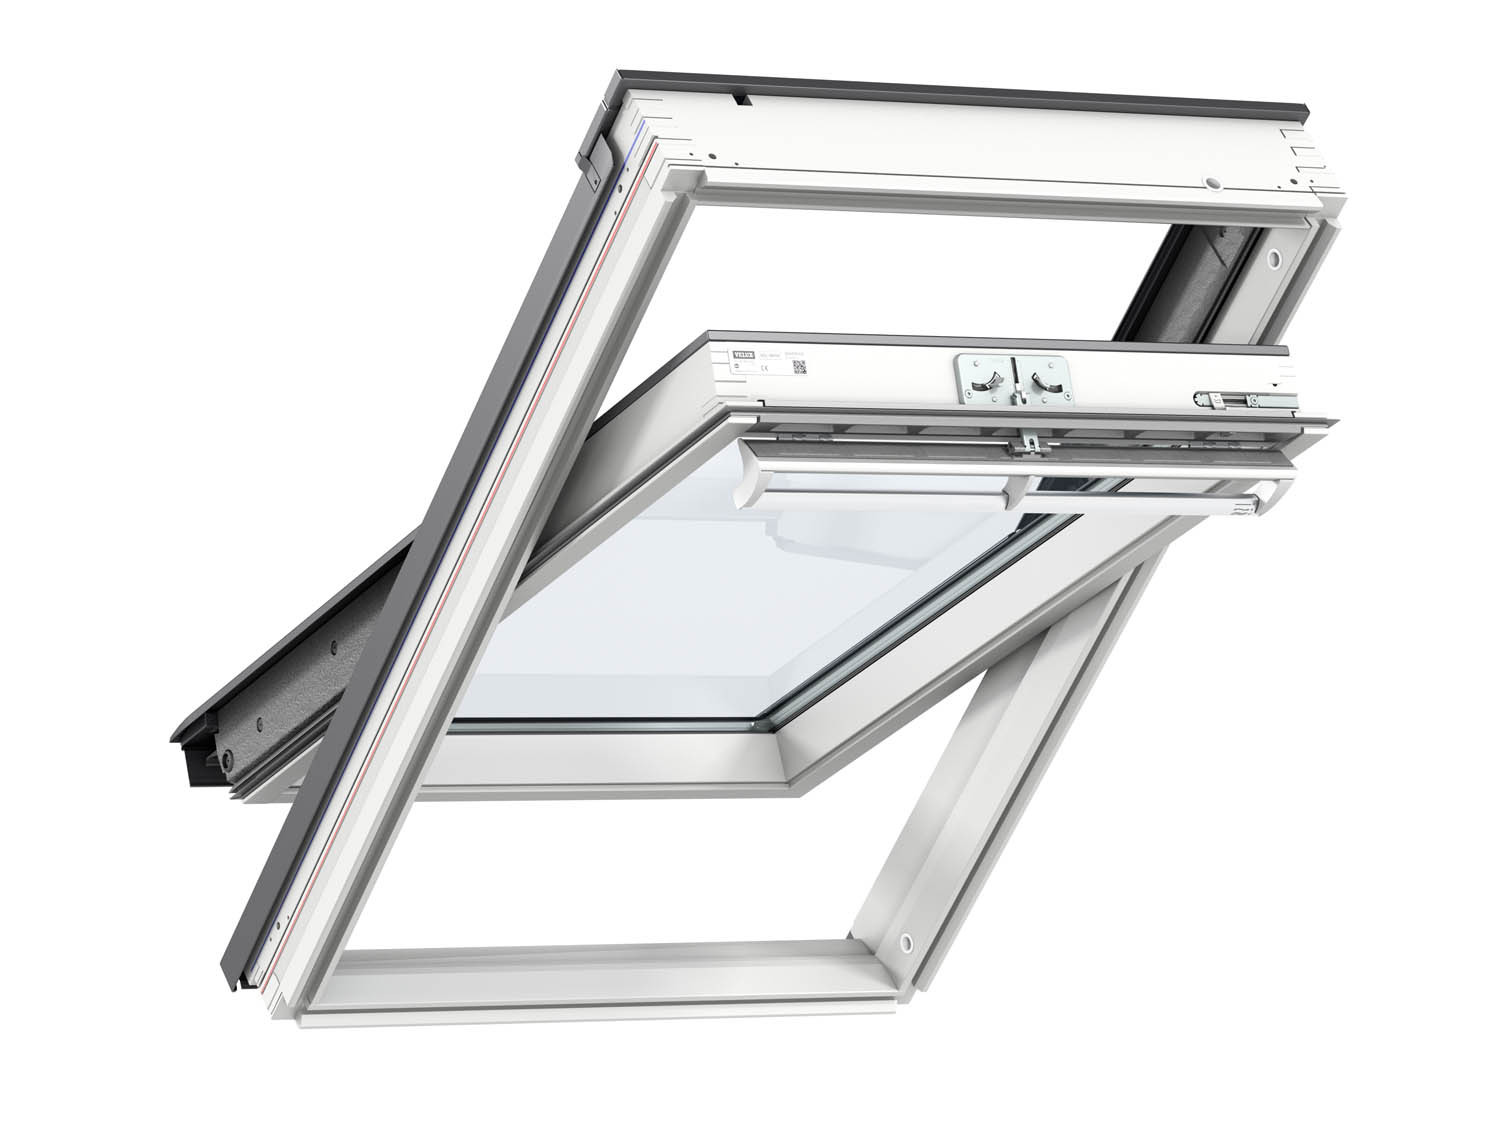 Velux 550mm x 1.18m White Roof Window GGL2070 CK06